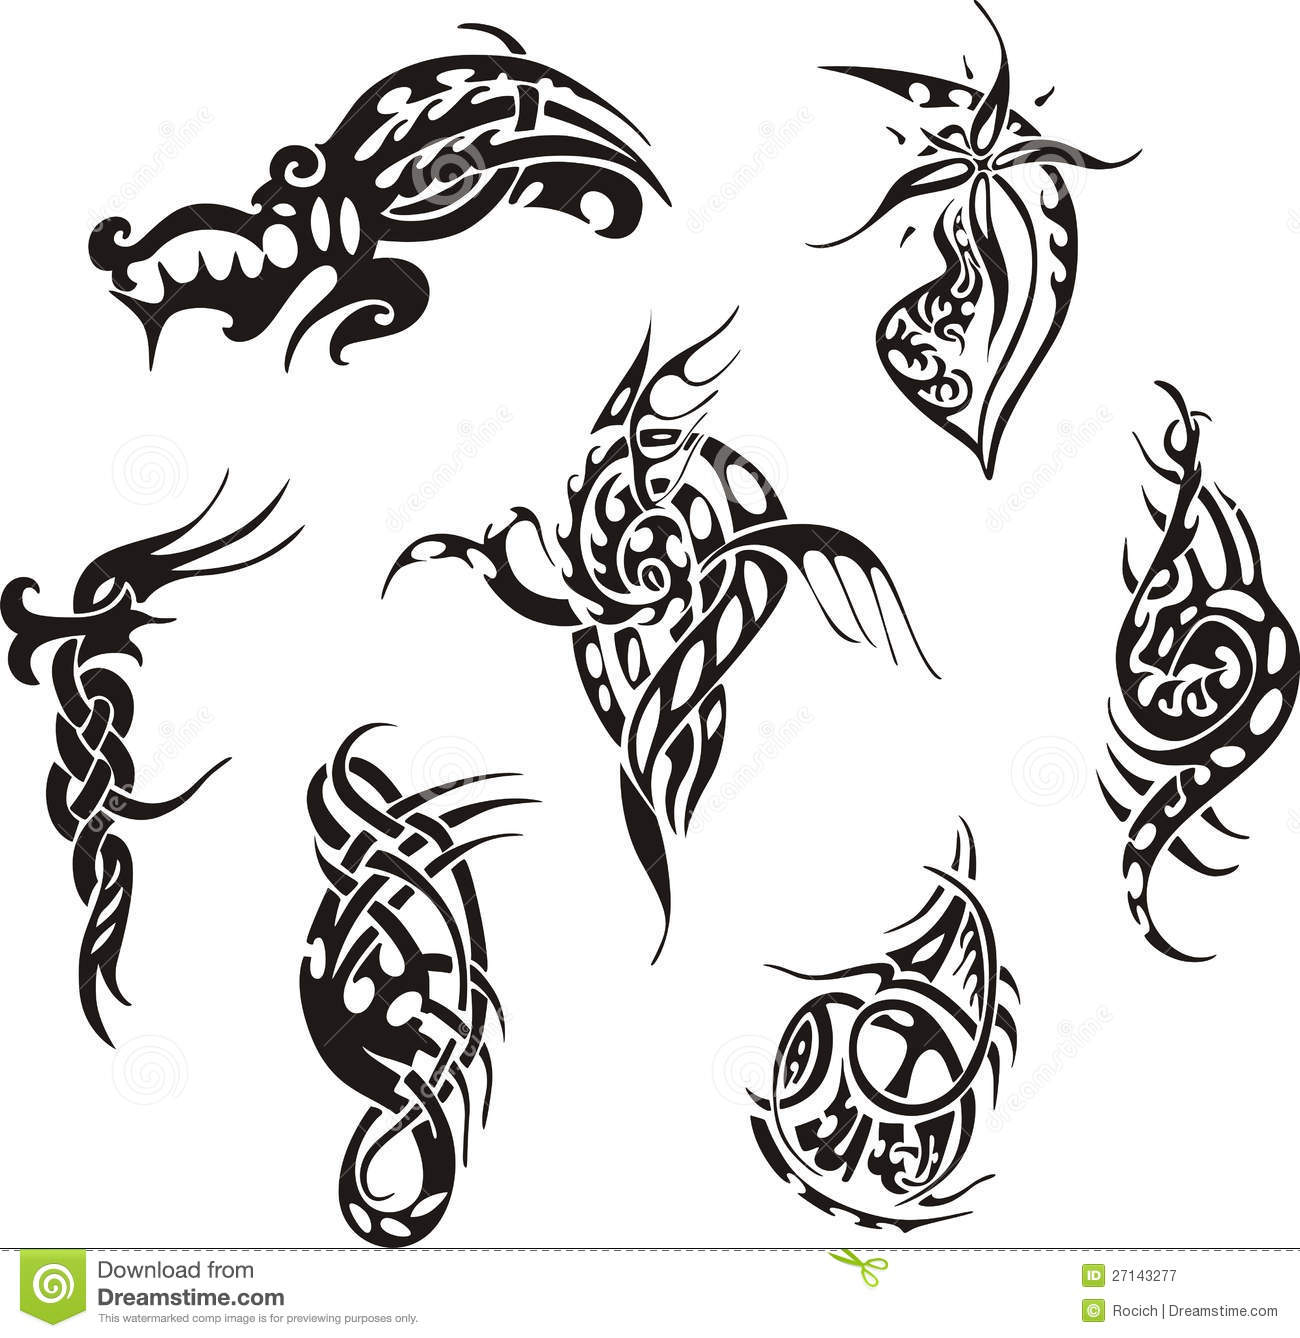 tribal tattoo designs stock vector illustration of lines 27143277. Black Bedroom Furniture Sets. Home Design Ideas